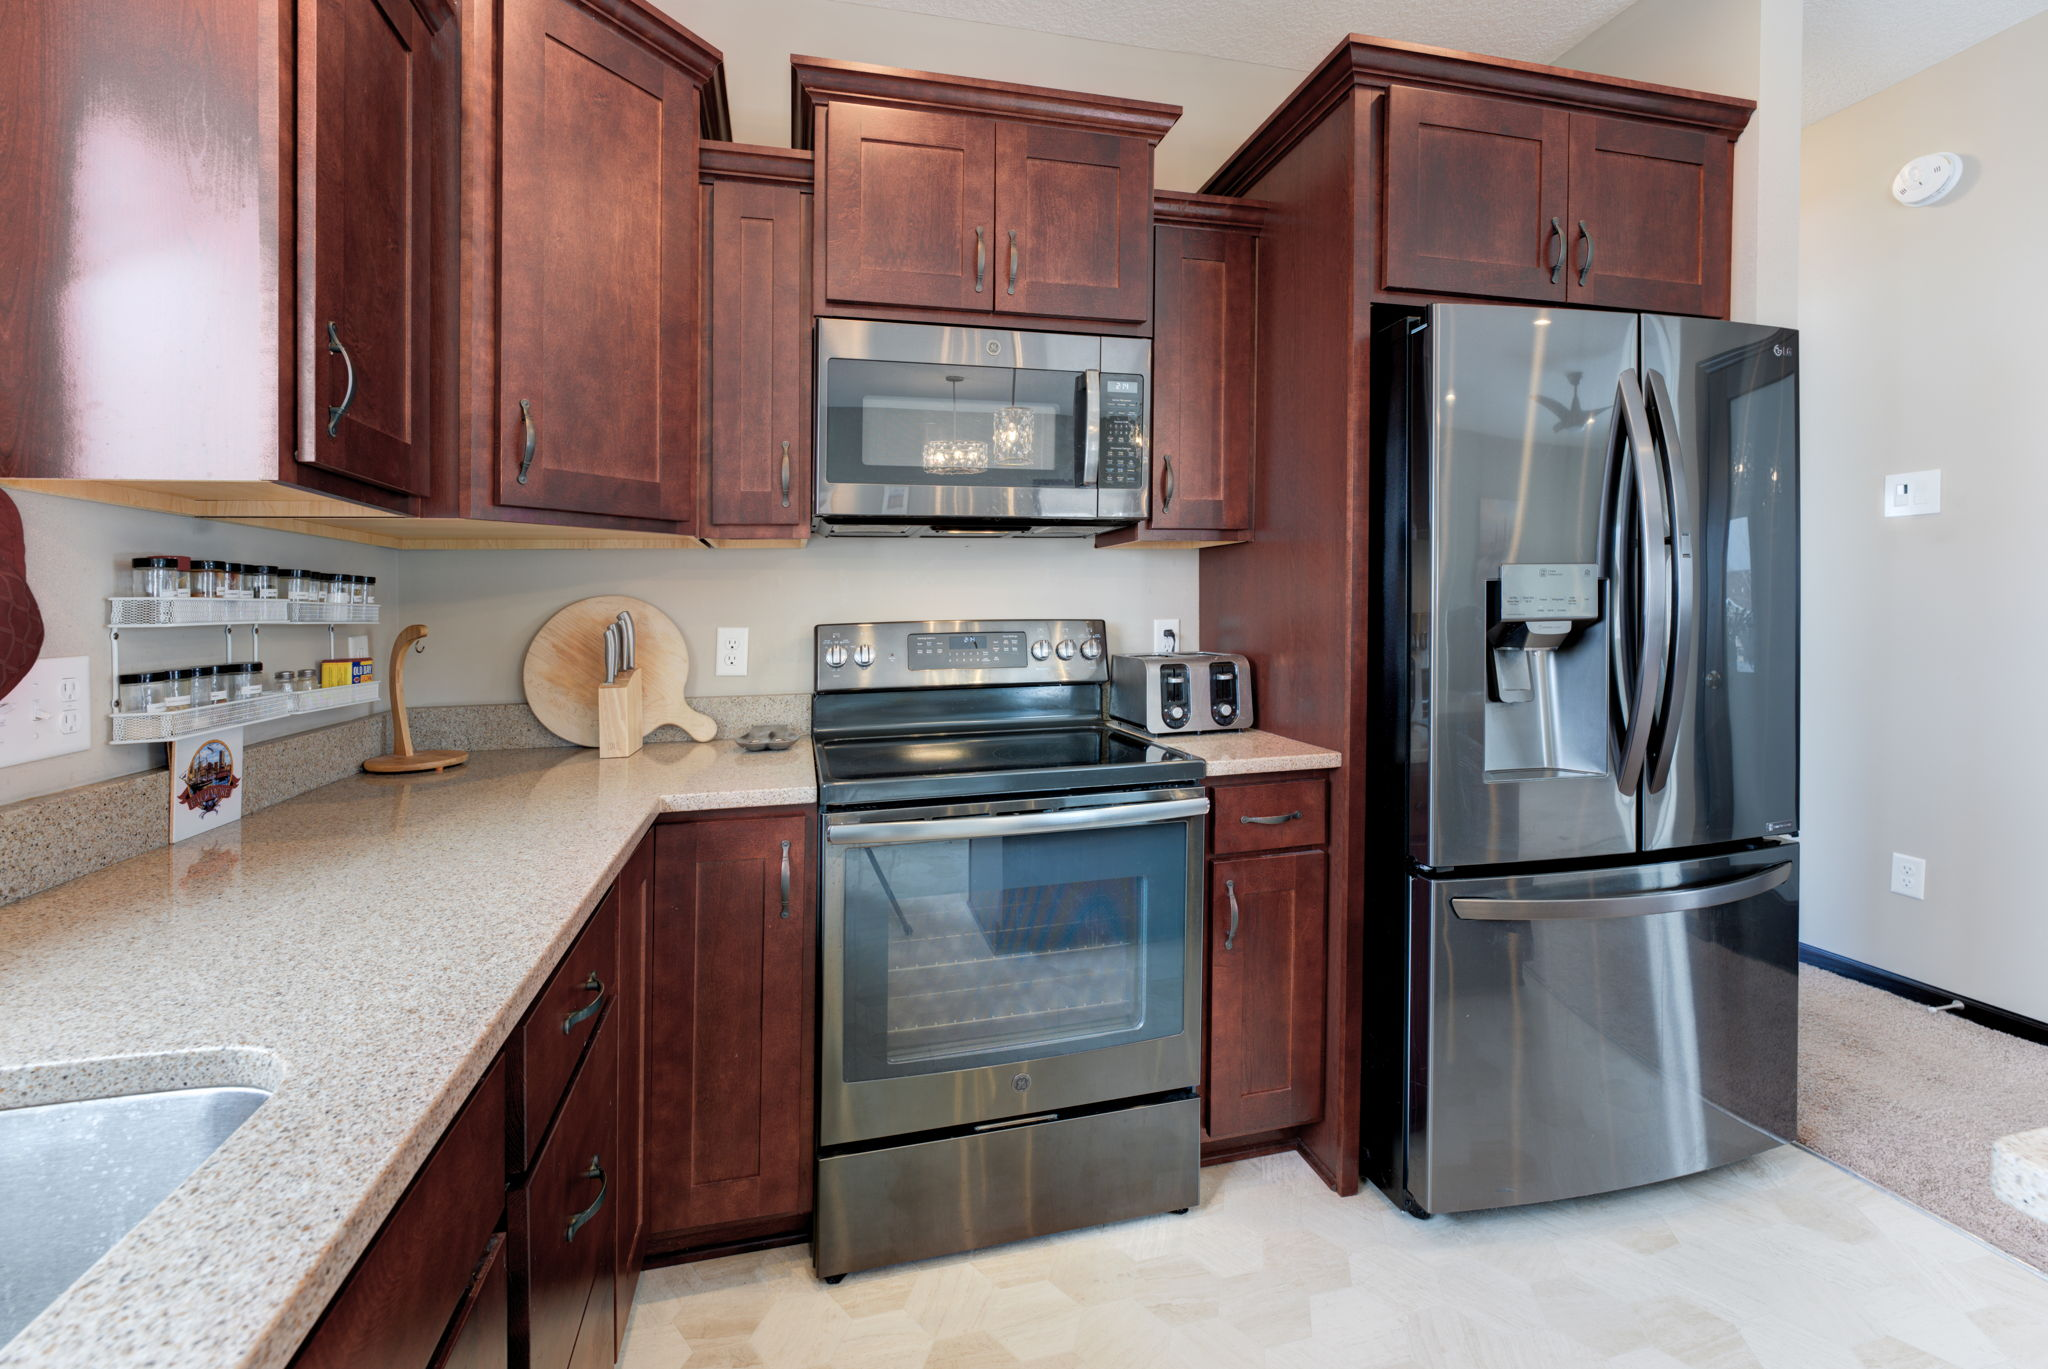 Rich custom cabinetry black stainless steel appliances